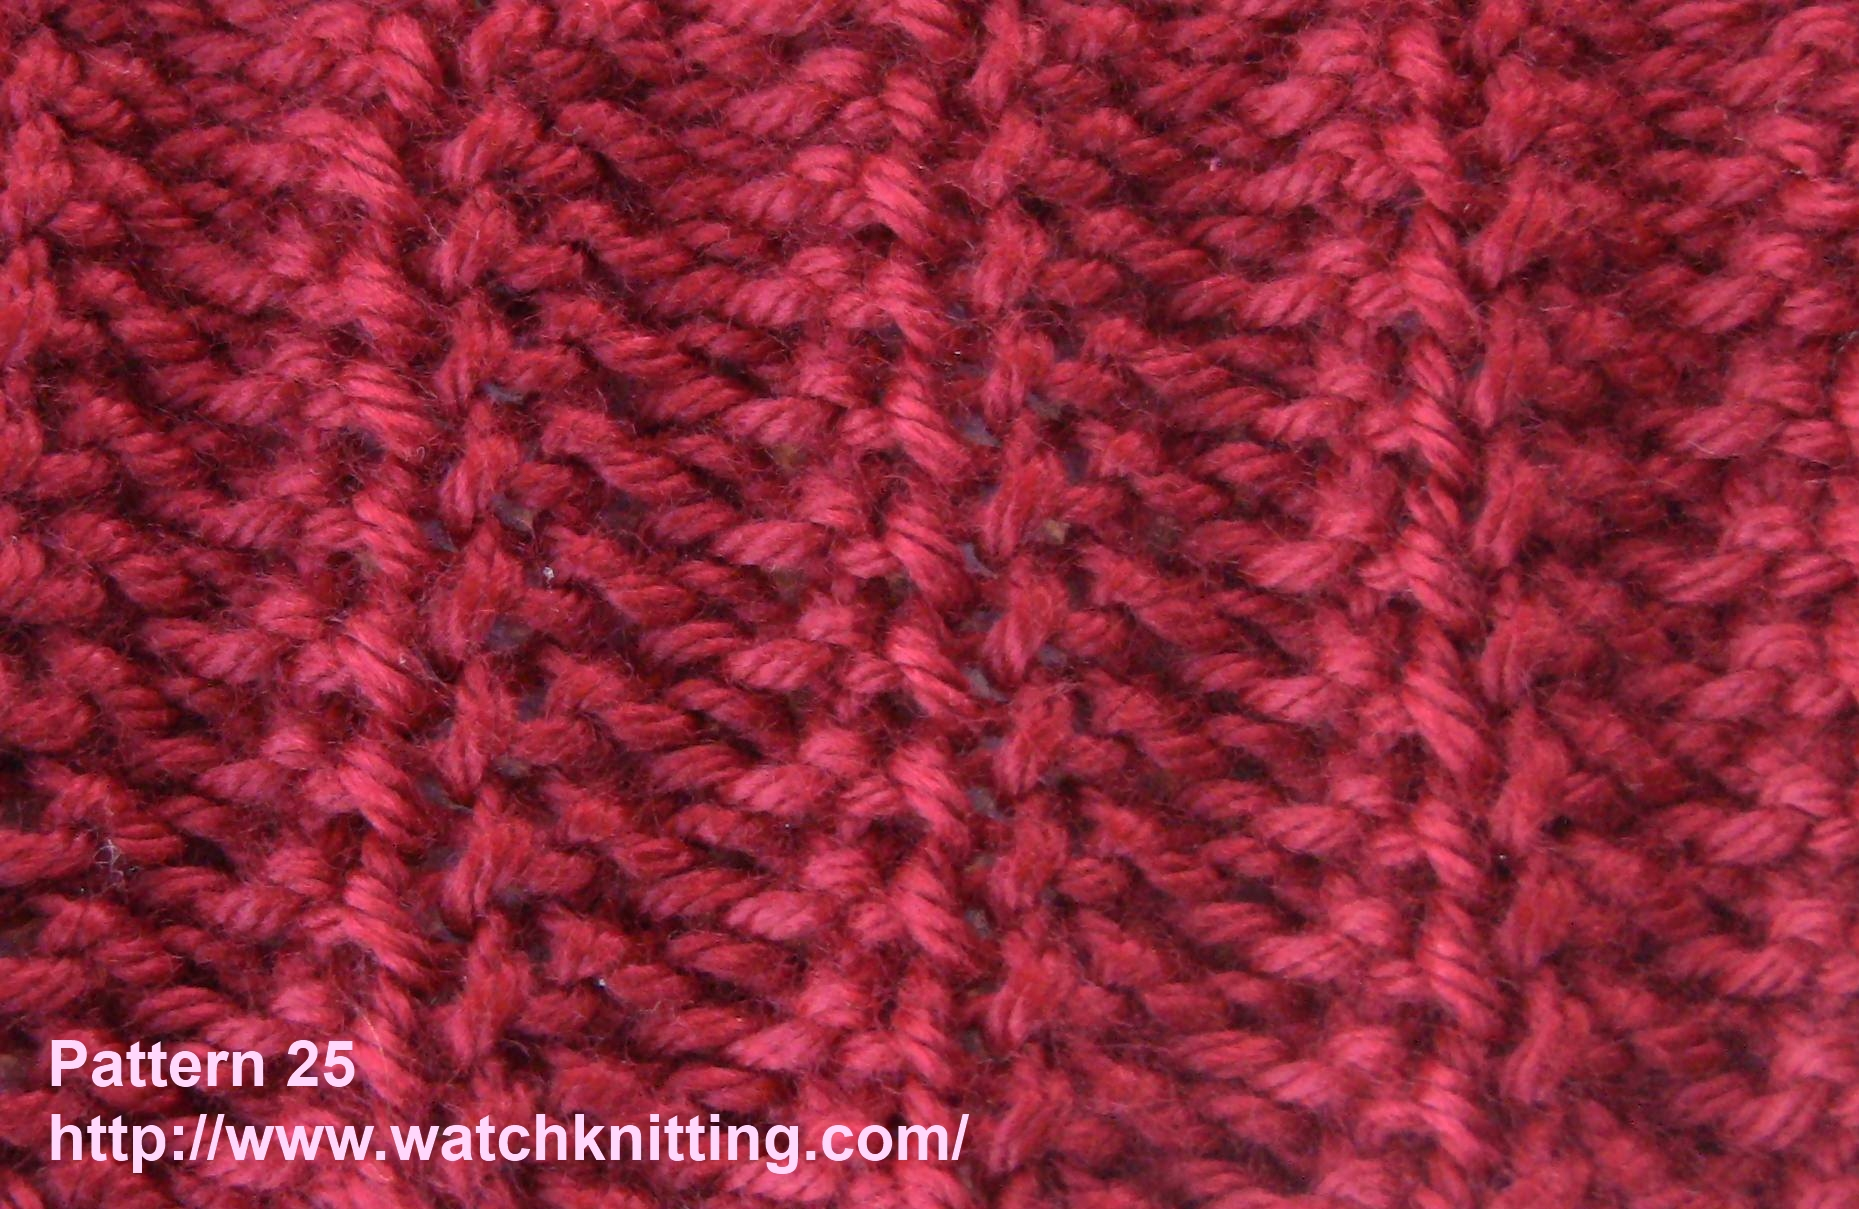 Simple Knitting Patterns : Knitting Basics For Beginners Watch knitting